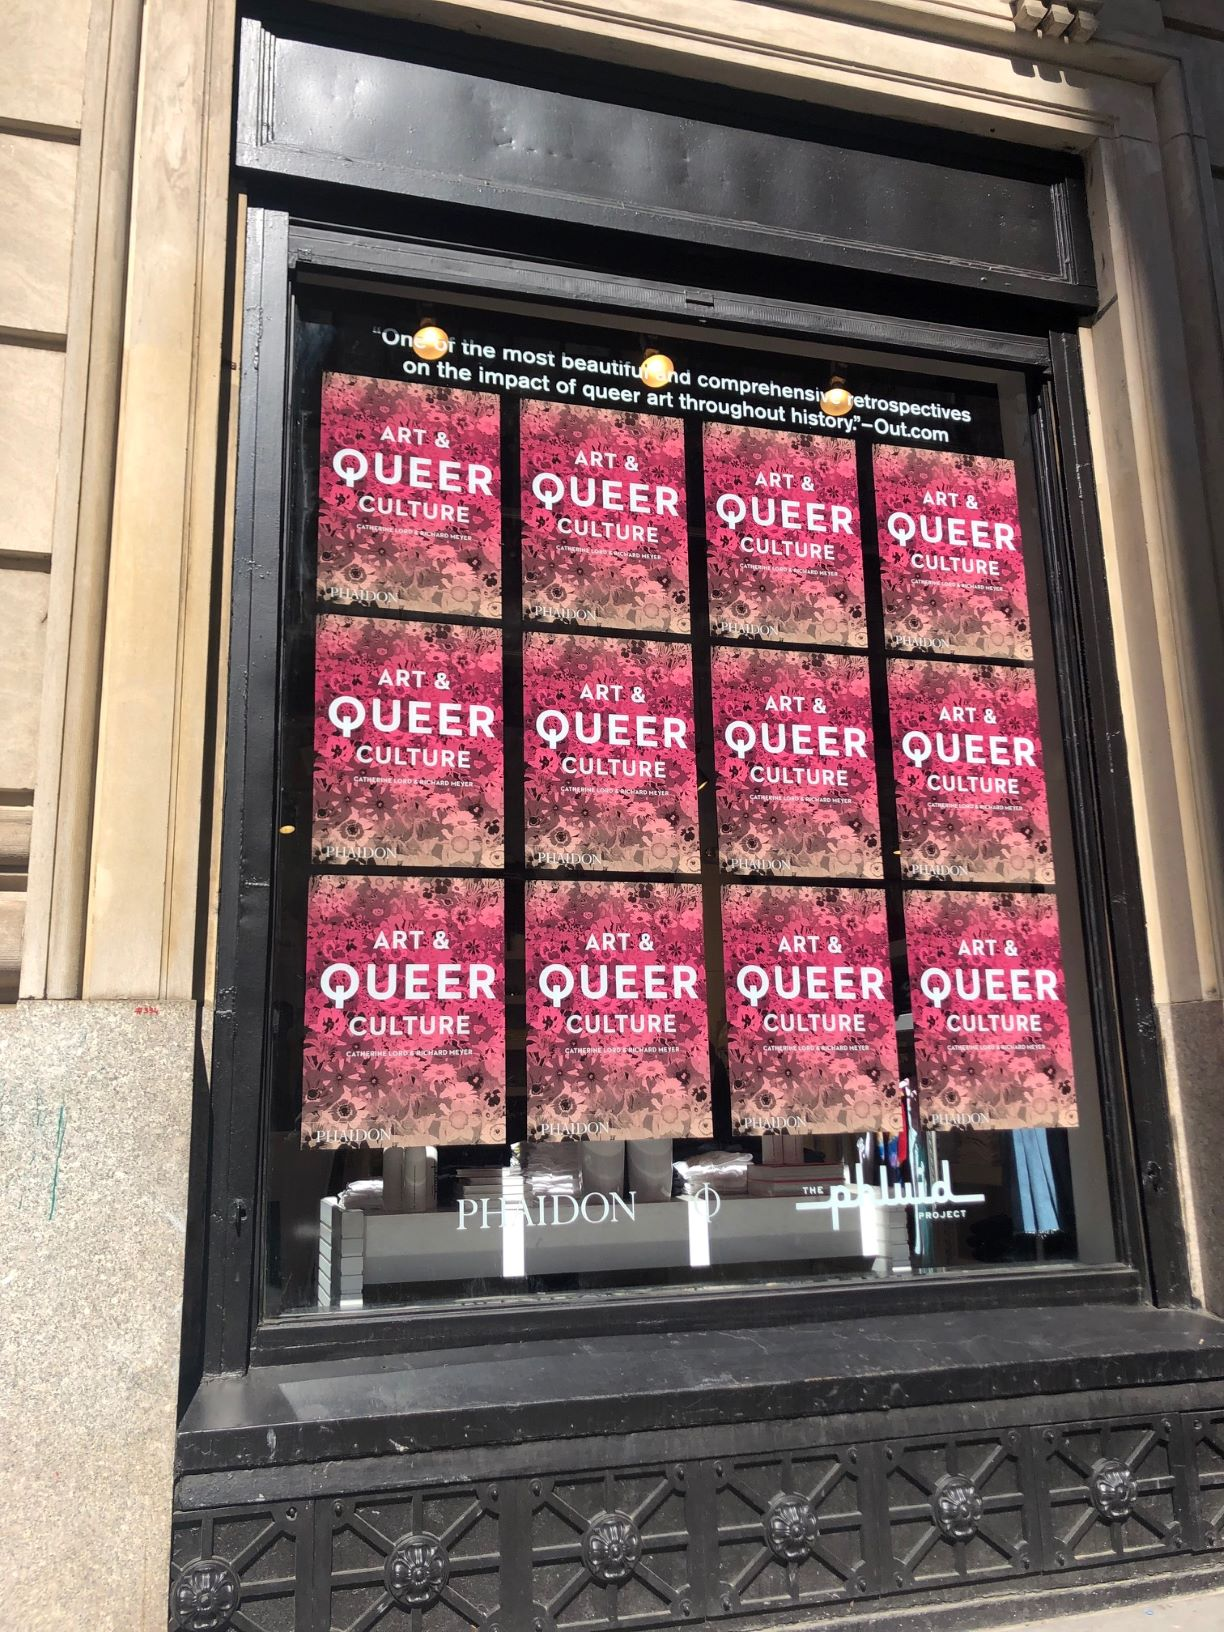 Art & Queer Culture is on show in the first gender-free store